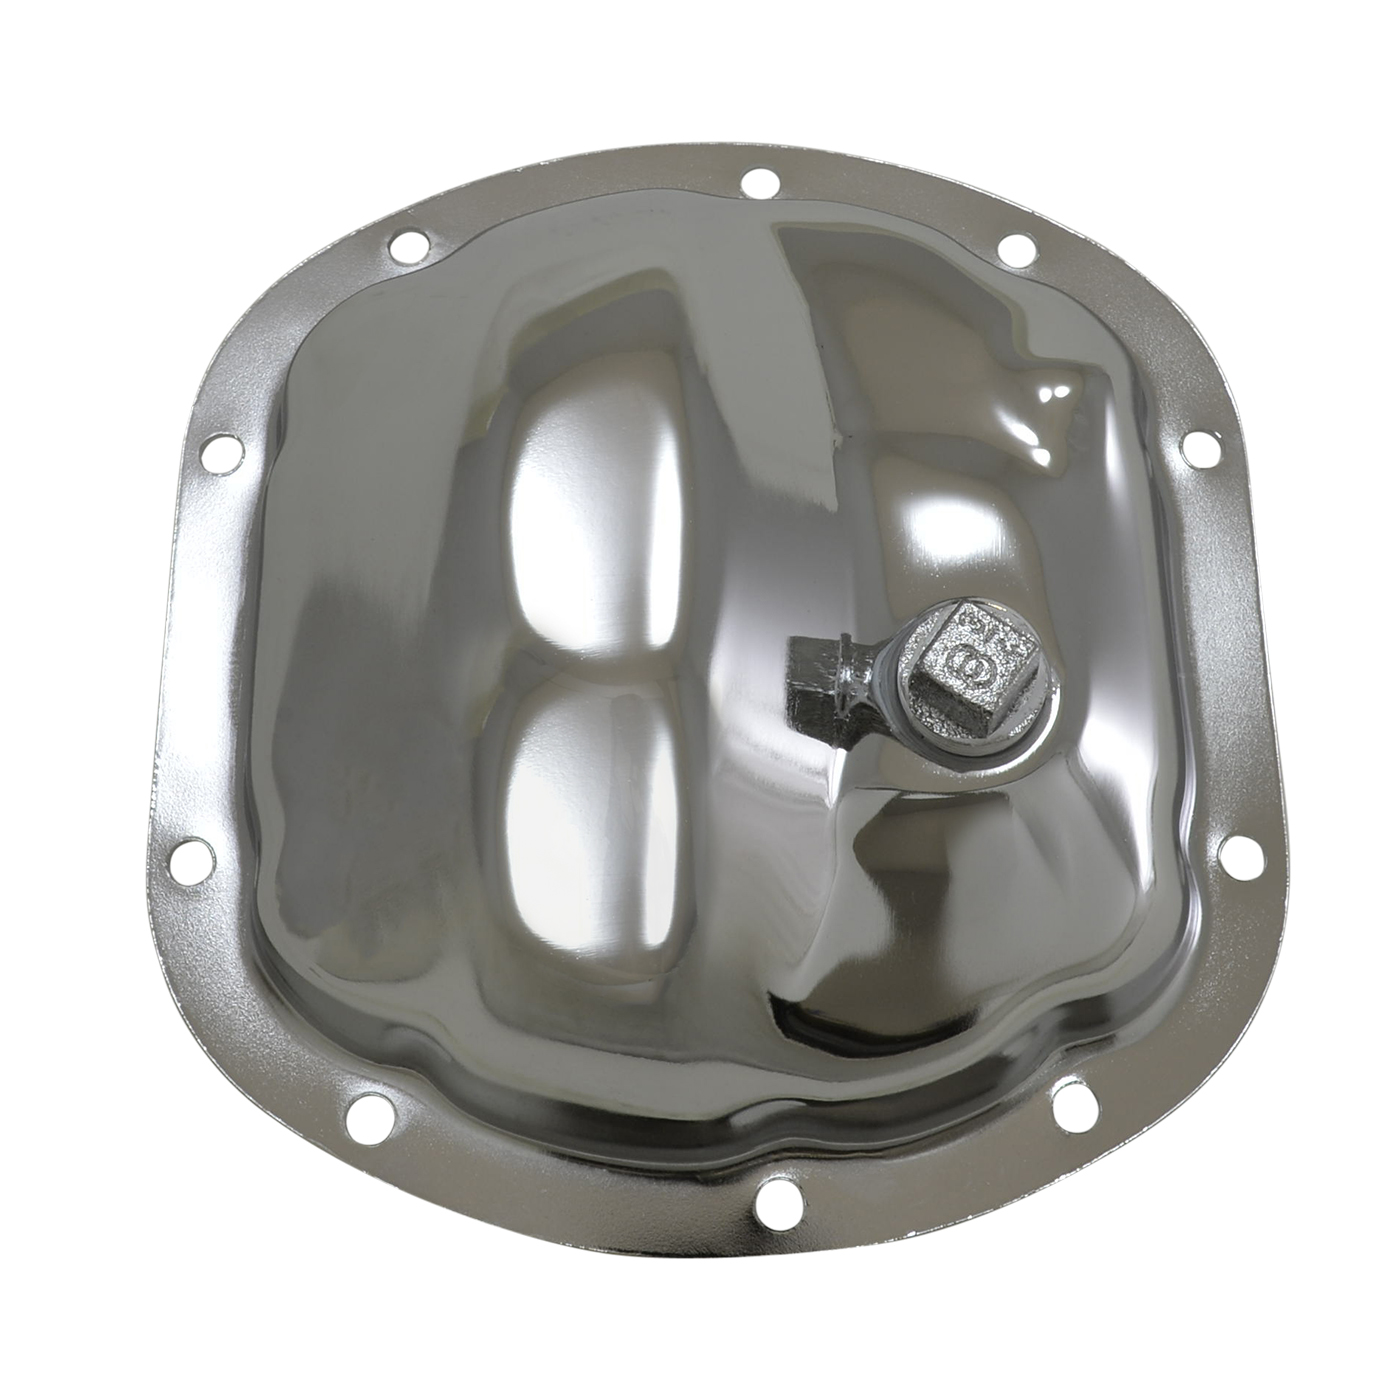 YP C1-D30-STD - Replacement Chrome Cover for Dana 30 Standard rotation